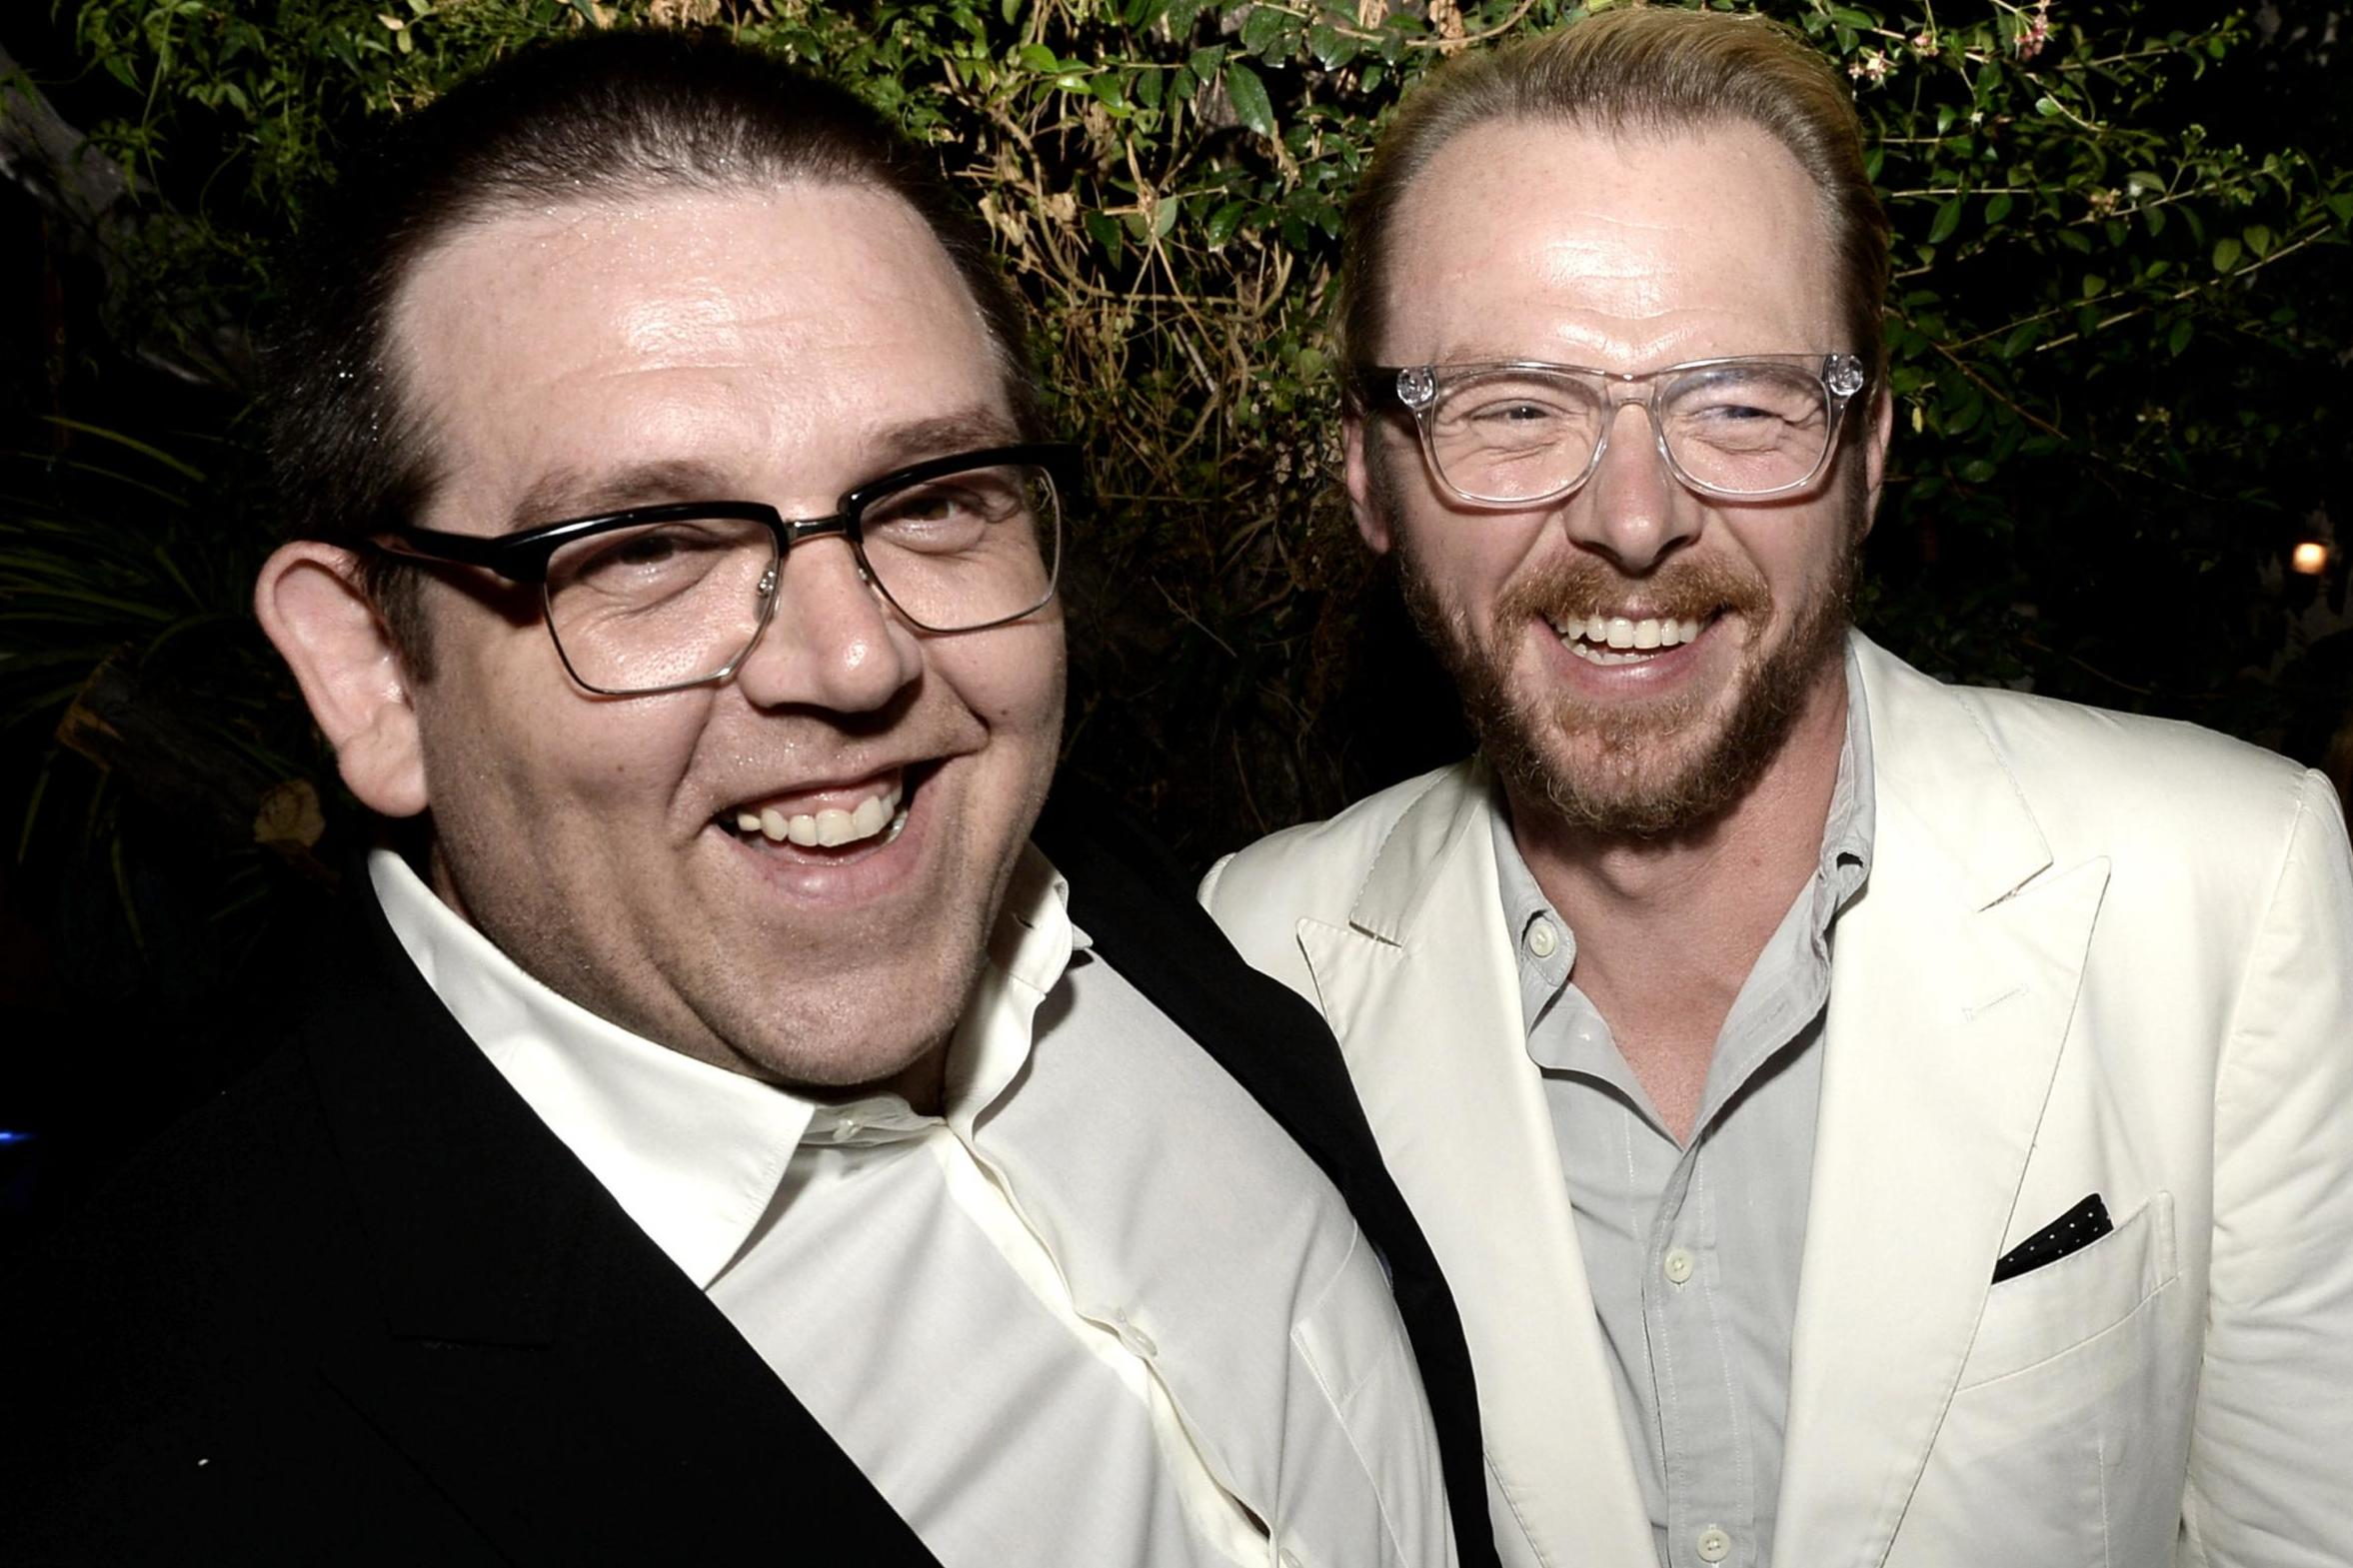 Truth Seekers: Simon Pegg and Nick Frost to star in first TV series together since Spaced